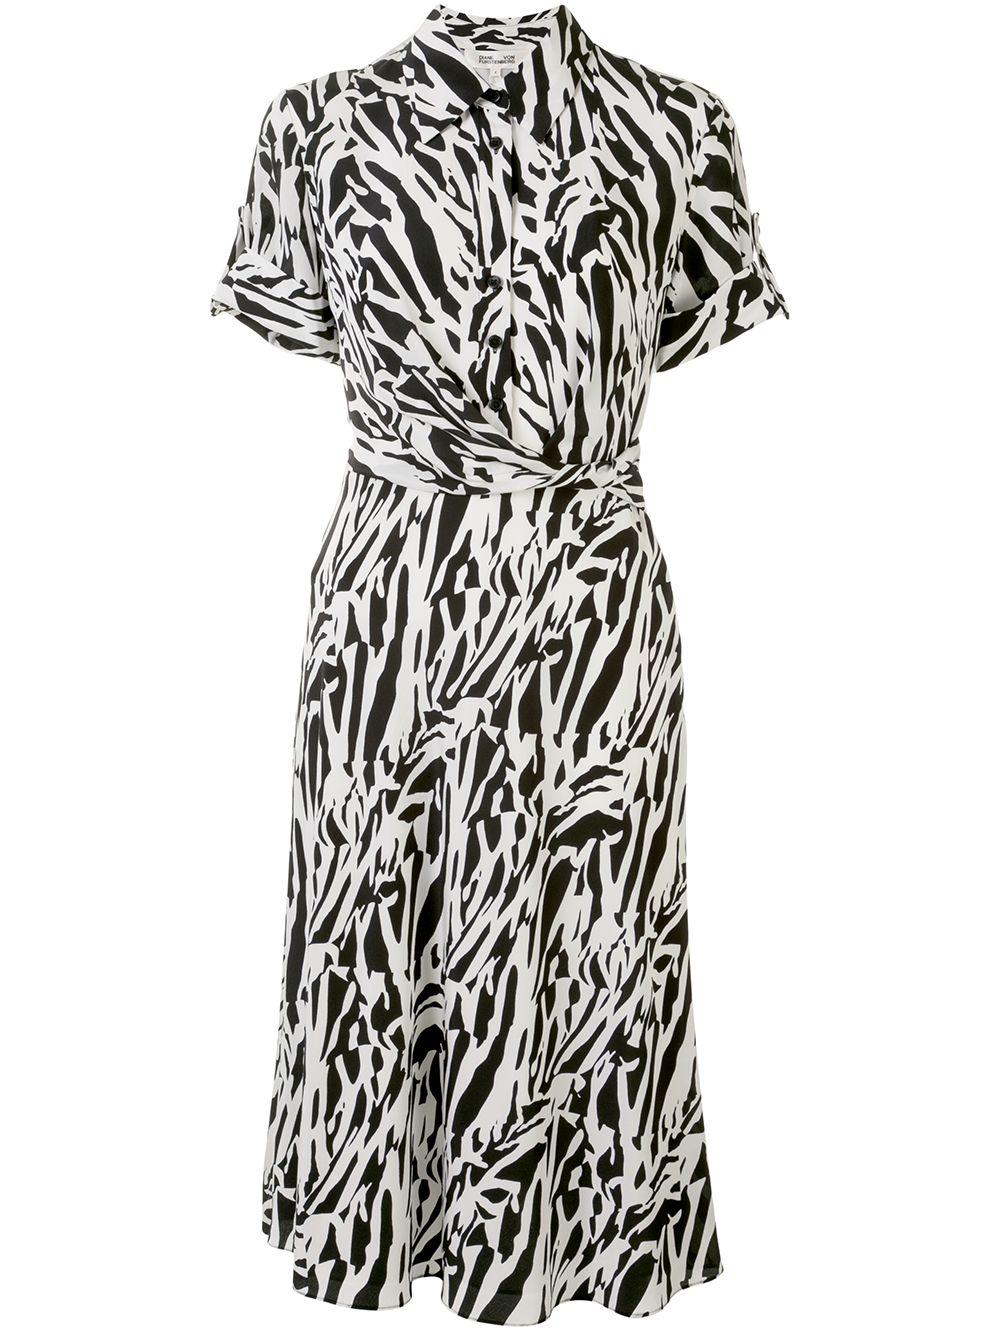 Deborah Faux Wrap Shirt Dress Item # 13944DVF